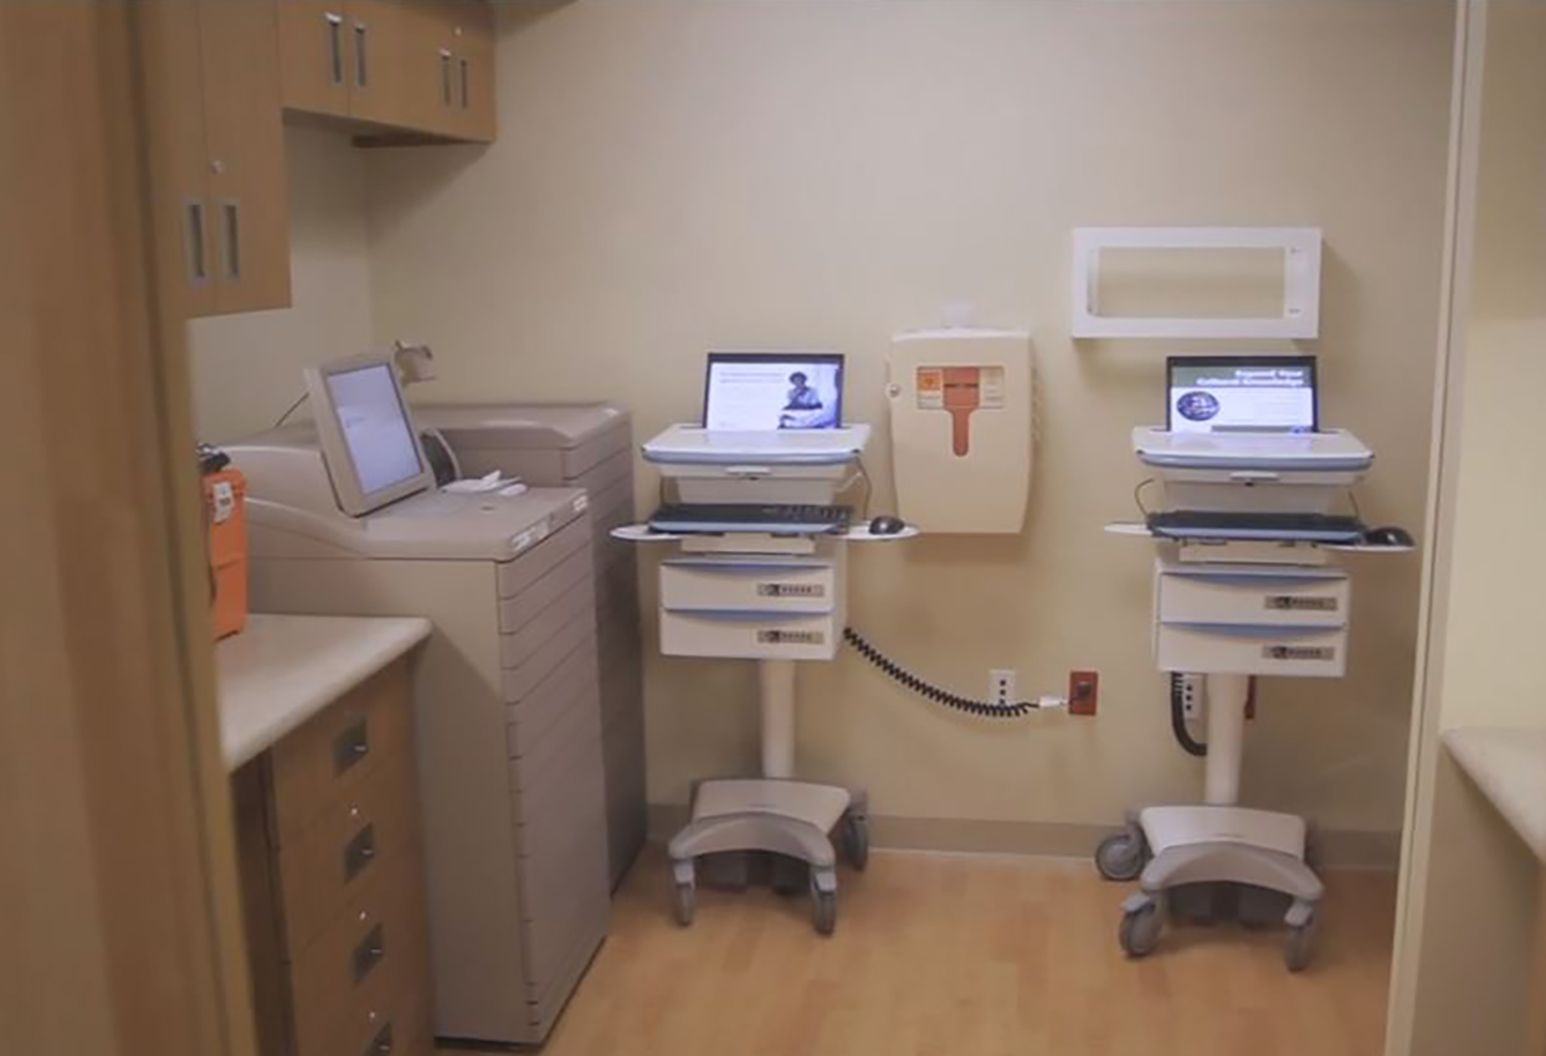 Image of medical equipment in a patient room